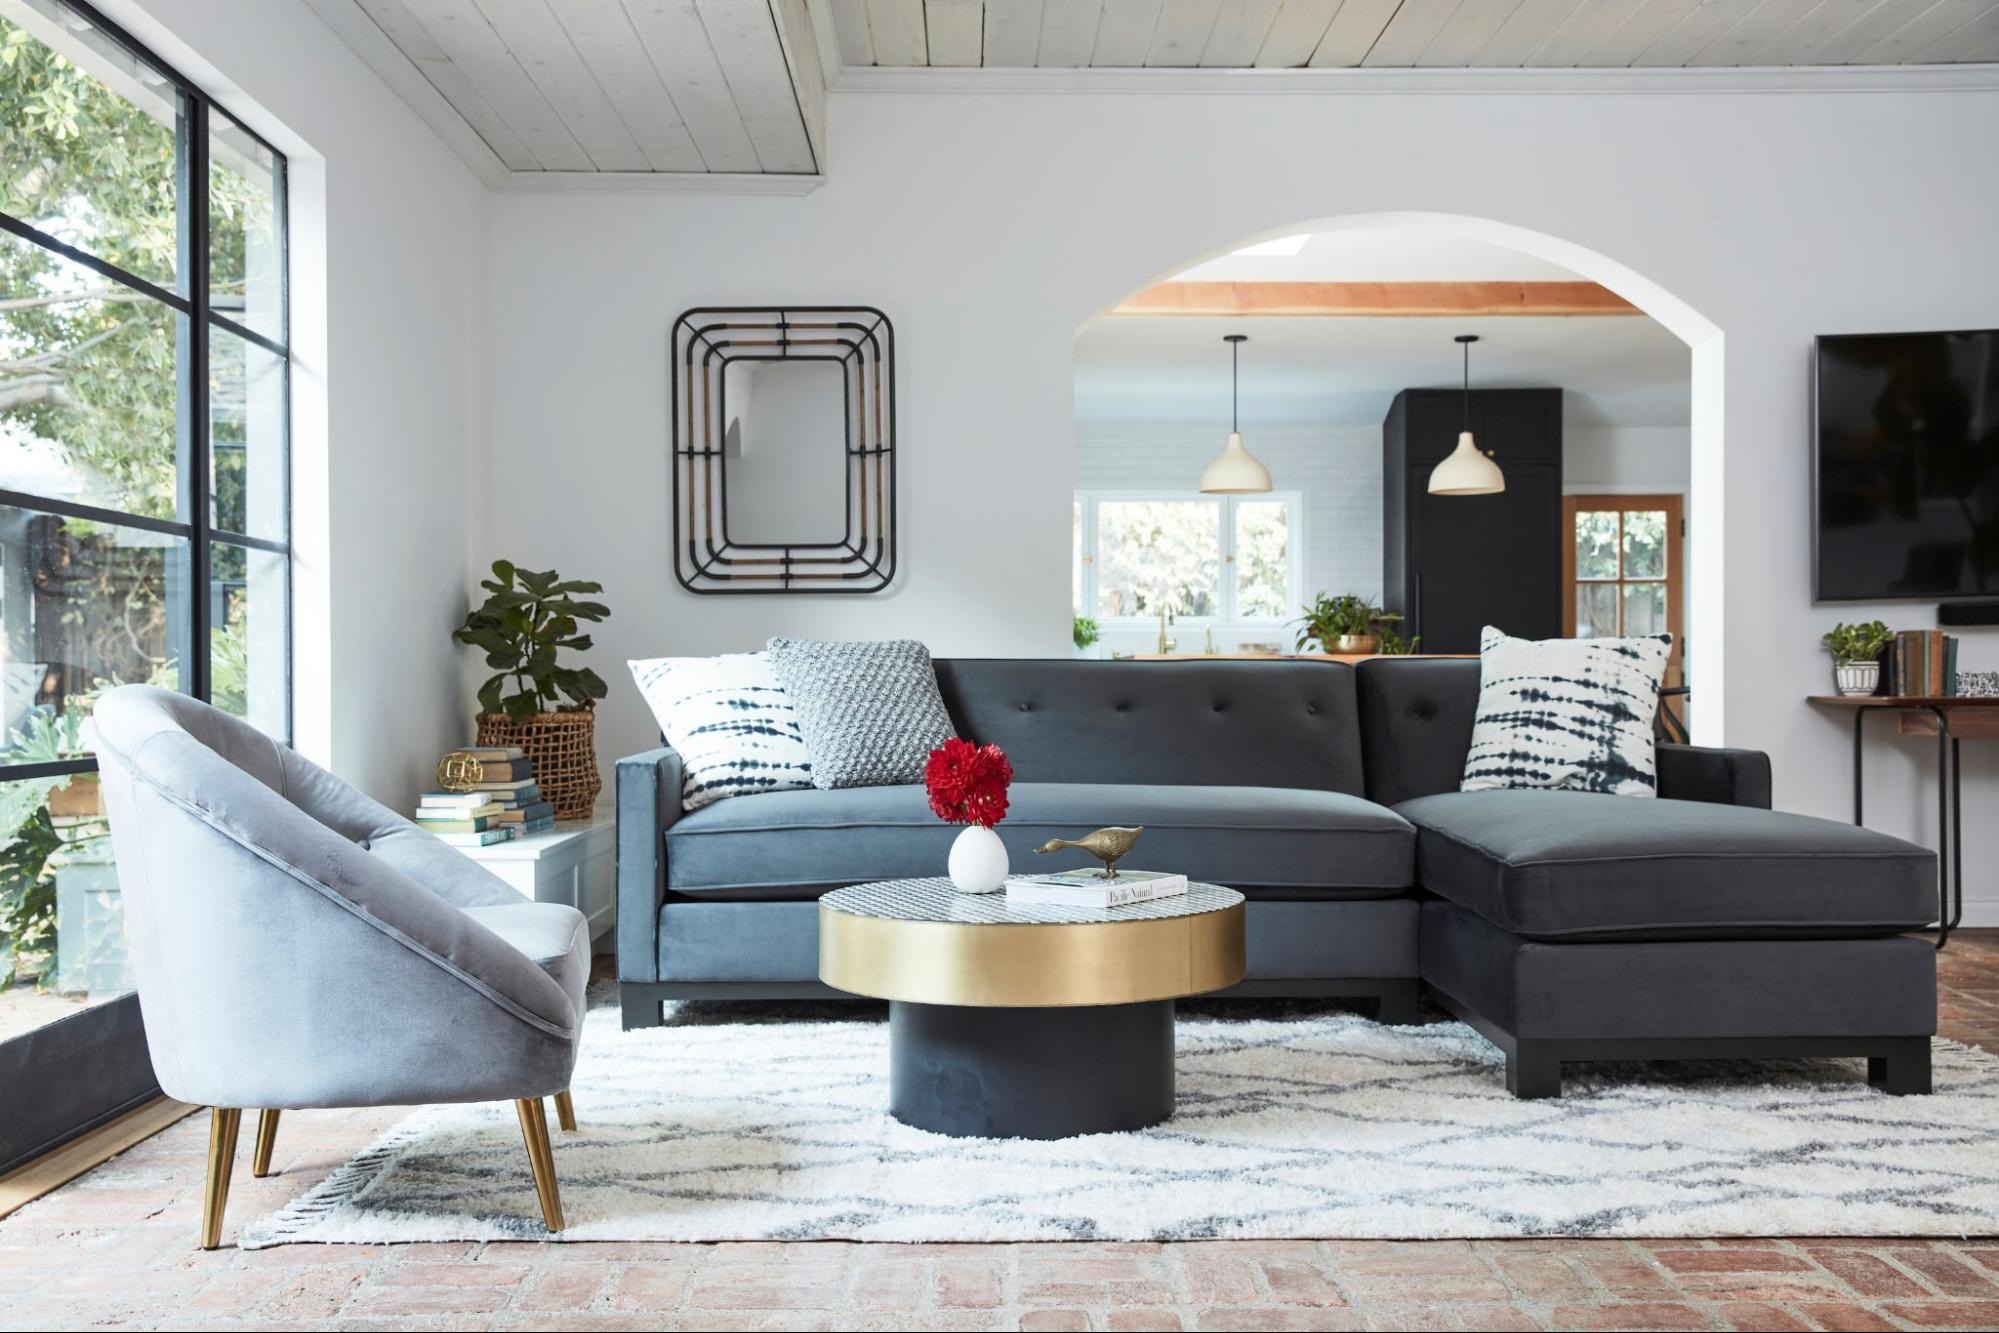 A dark grey sofa with a grey loveseat backdropped by a living room setting